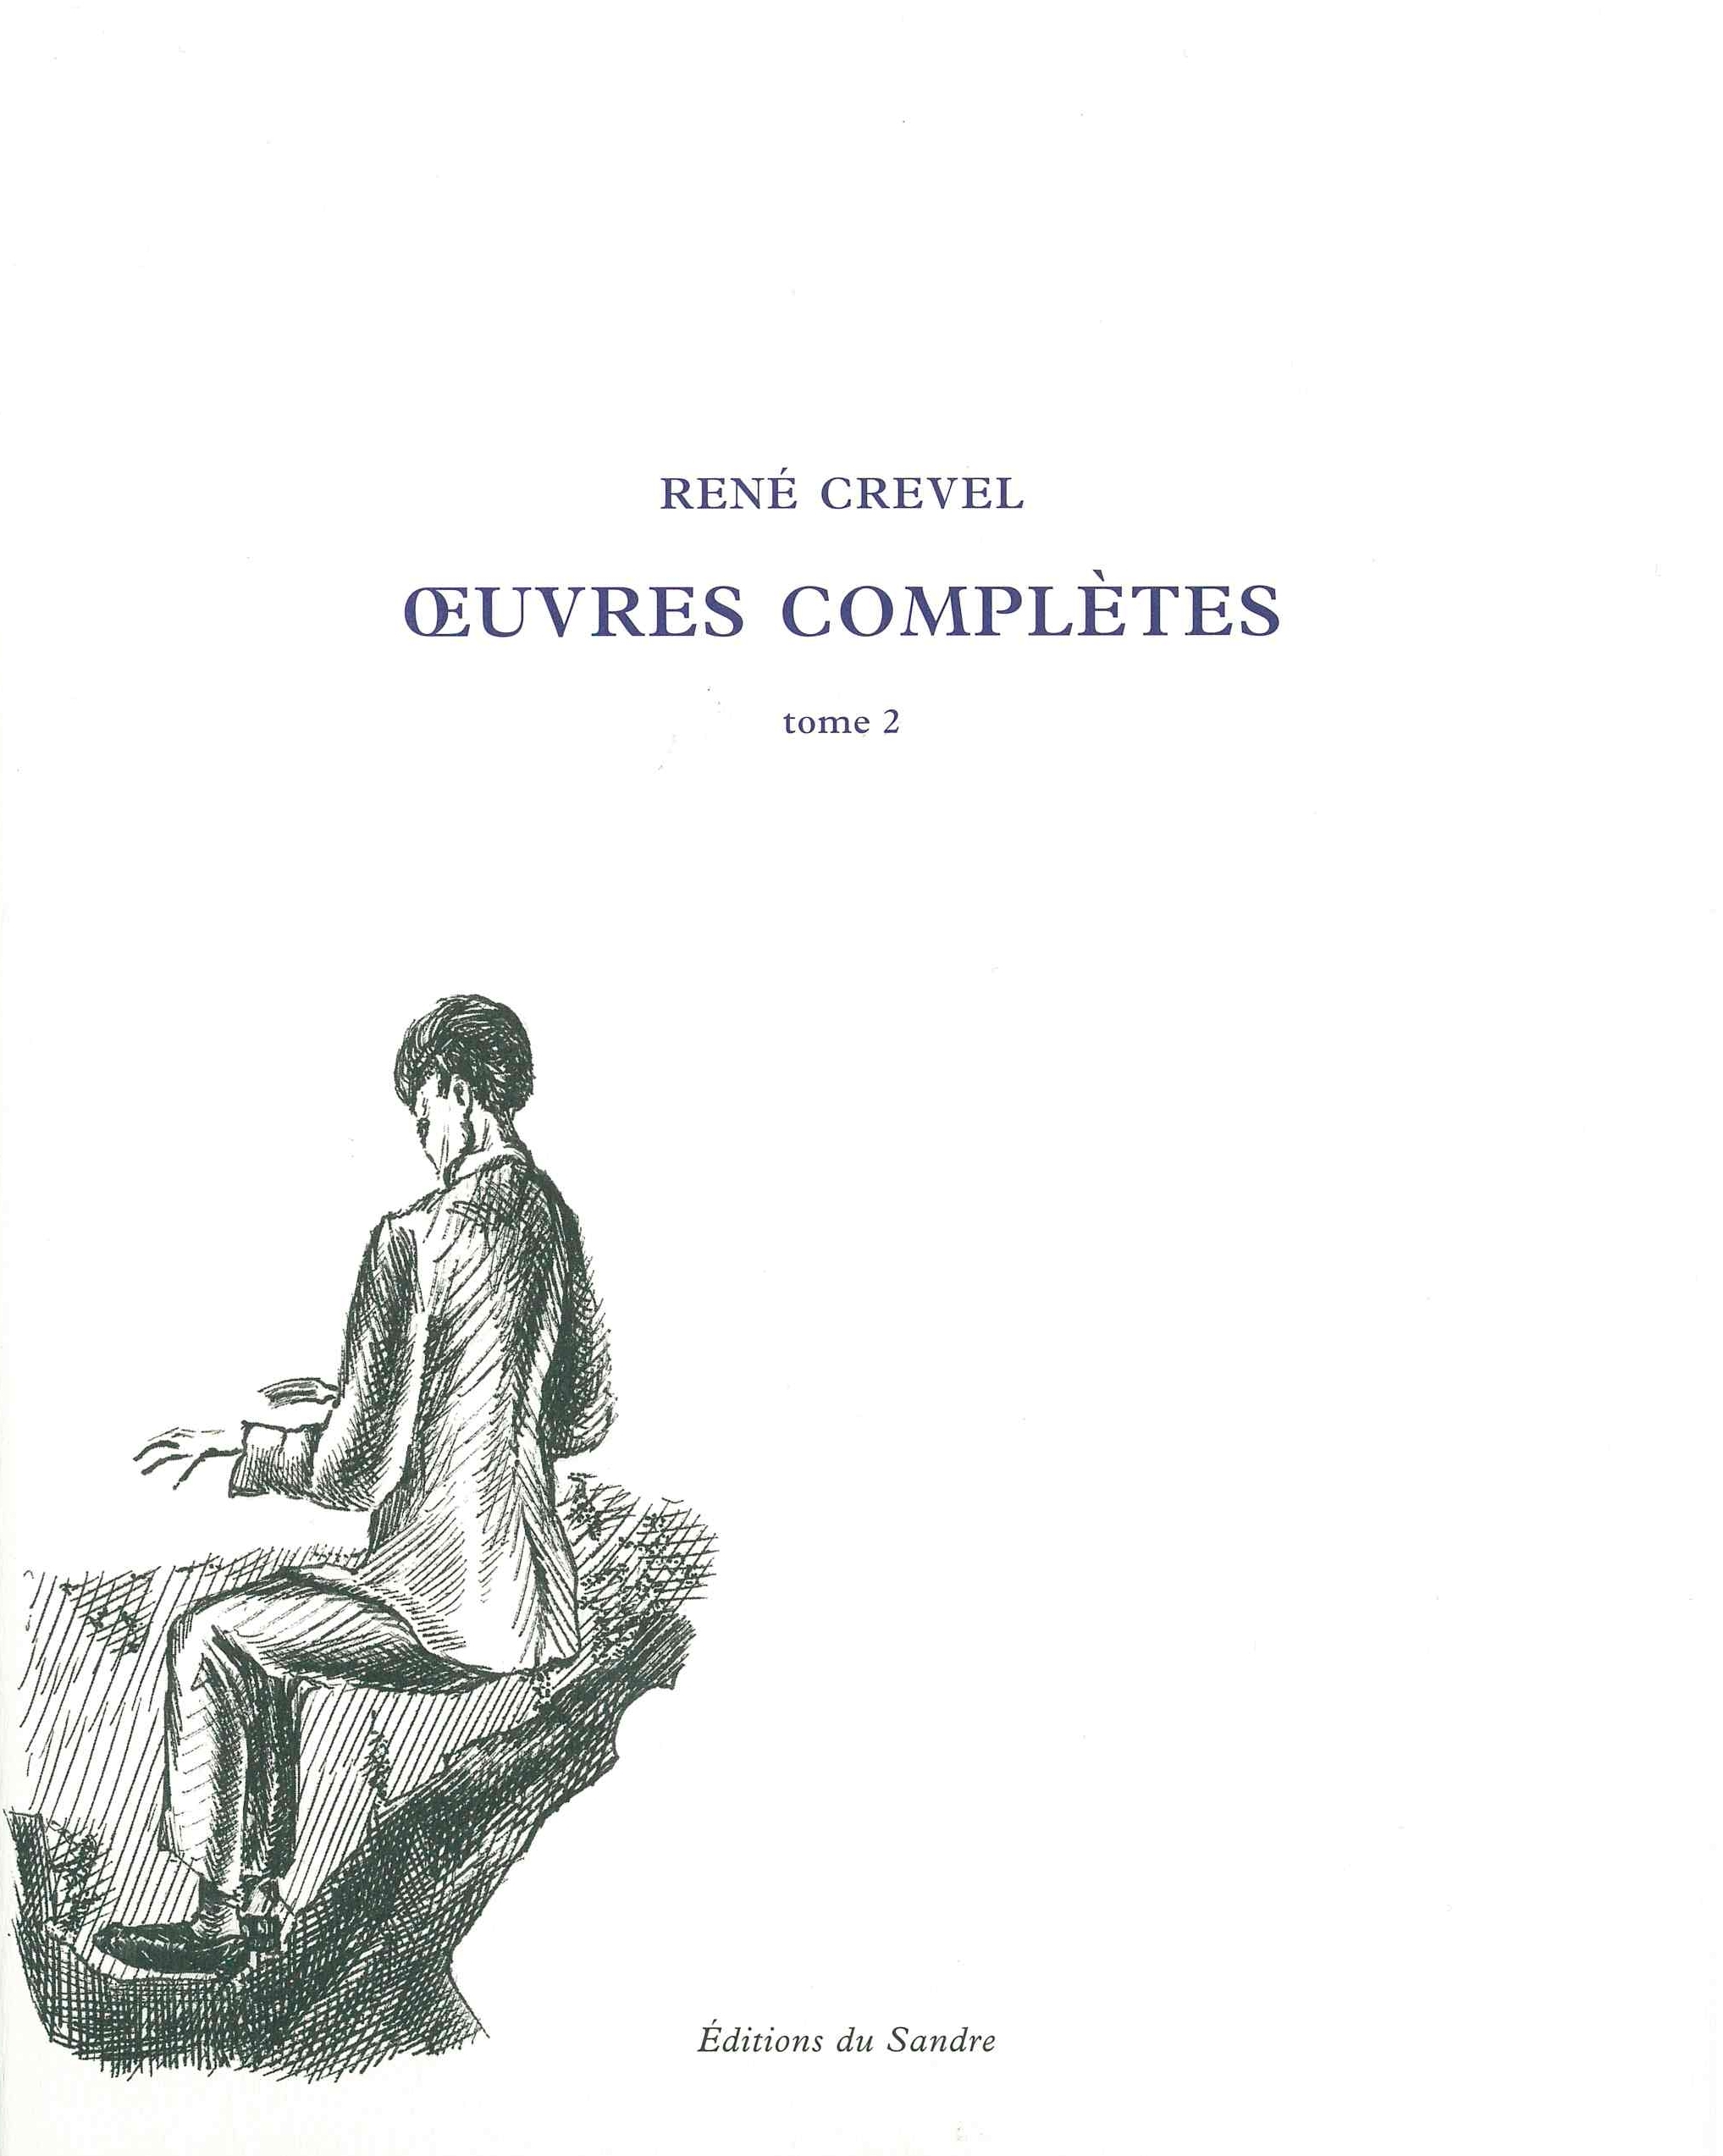 OEUVRES COMPLETES 2